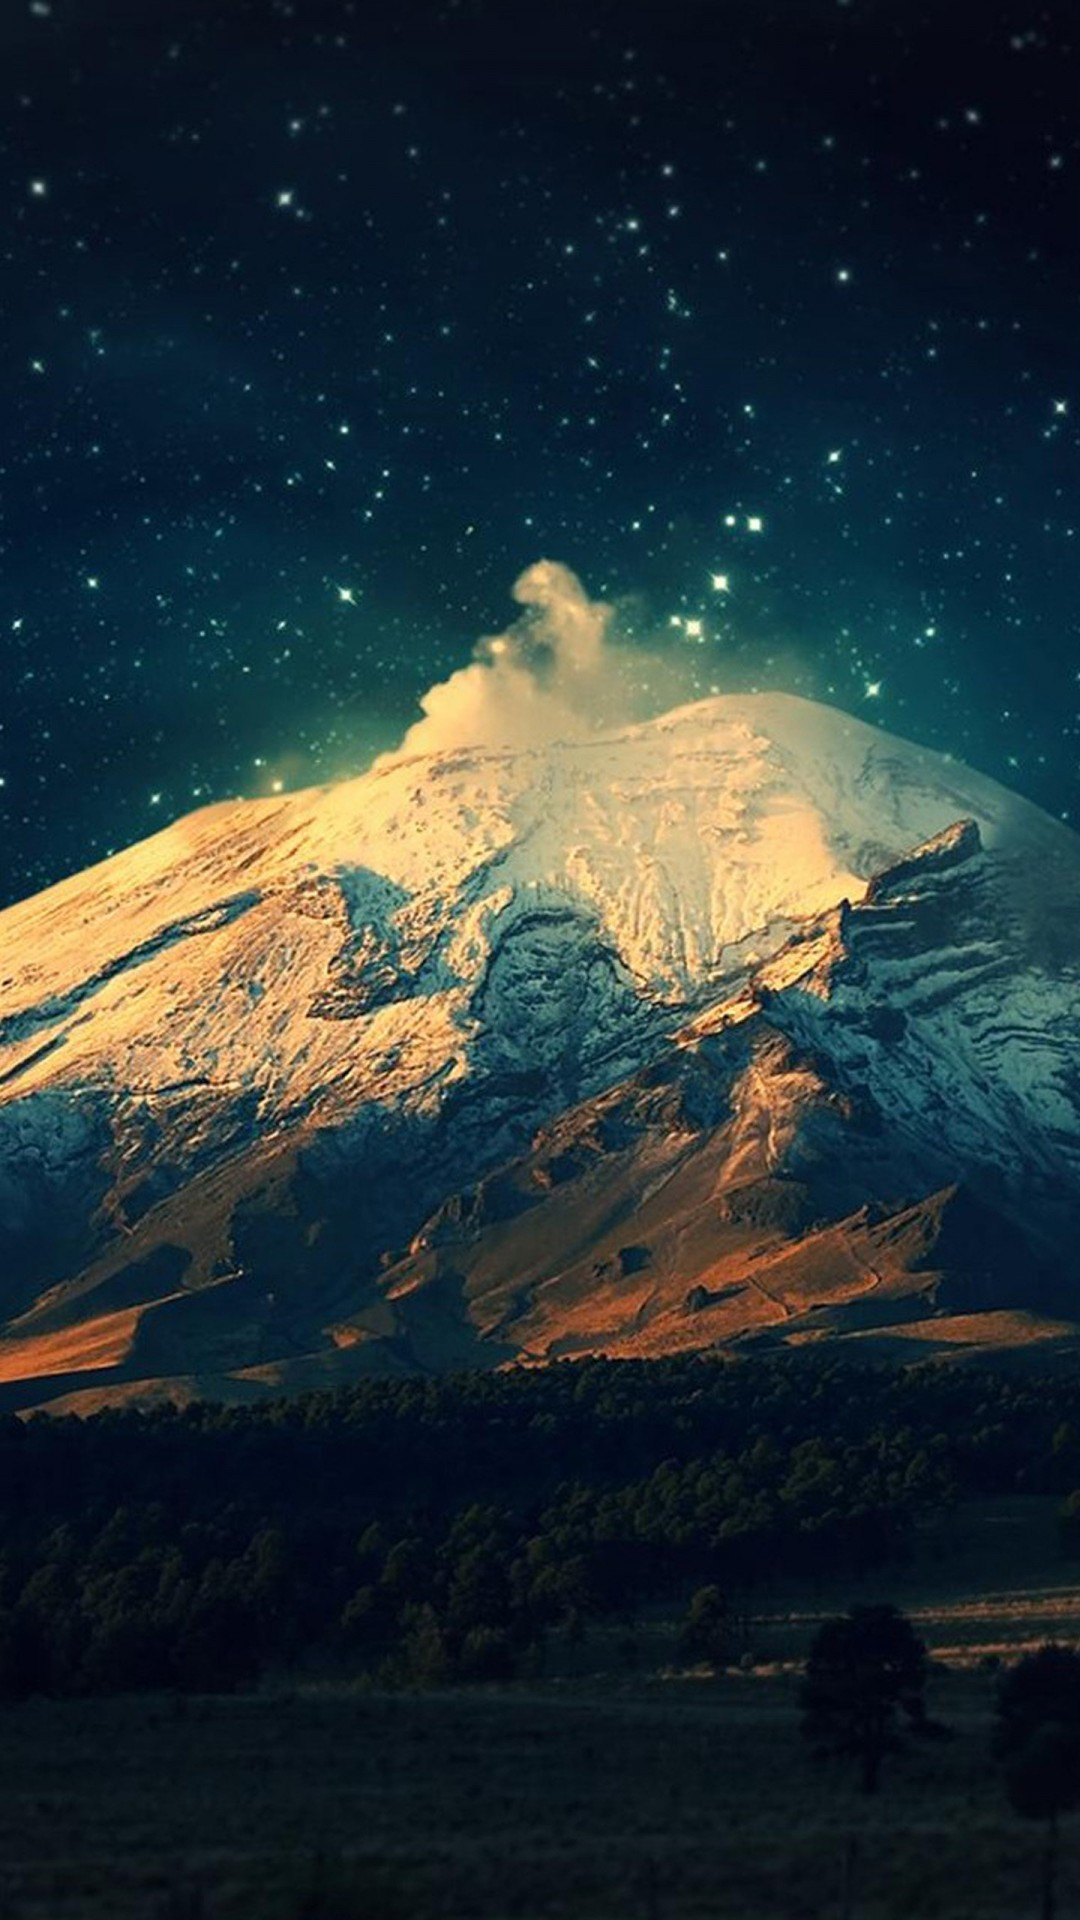 Top Wallpaper Mountain Iphone 7 - mountain-snow-and-night-wallpaper-background-1080x1920  Collection_943247.jpg